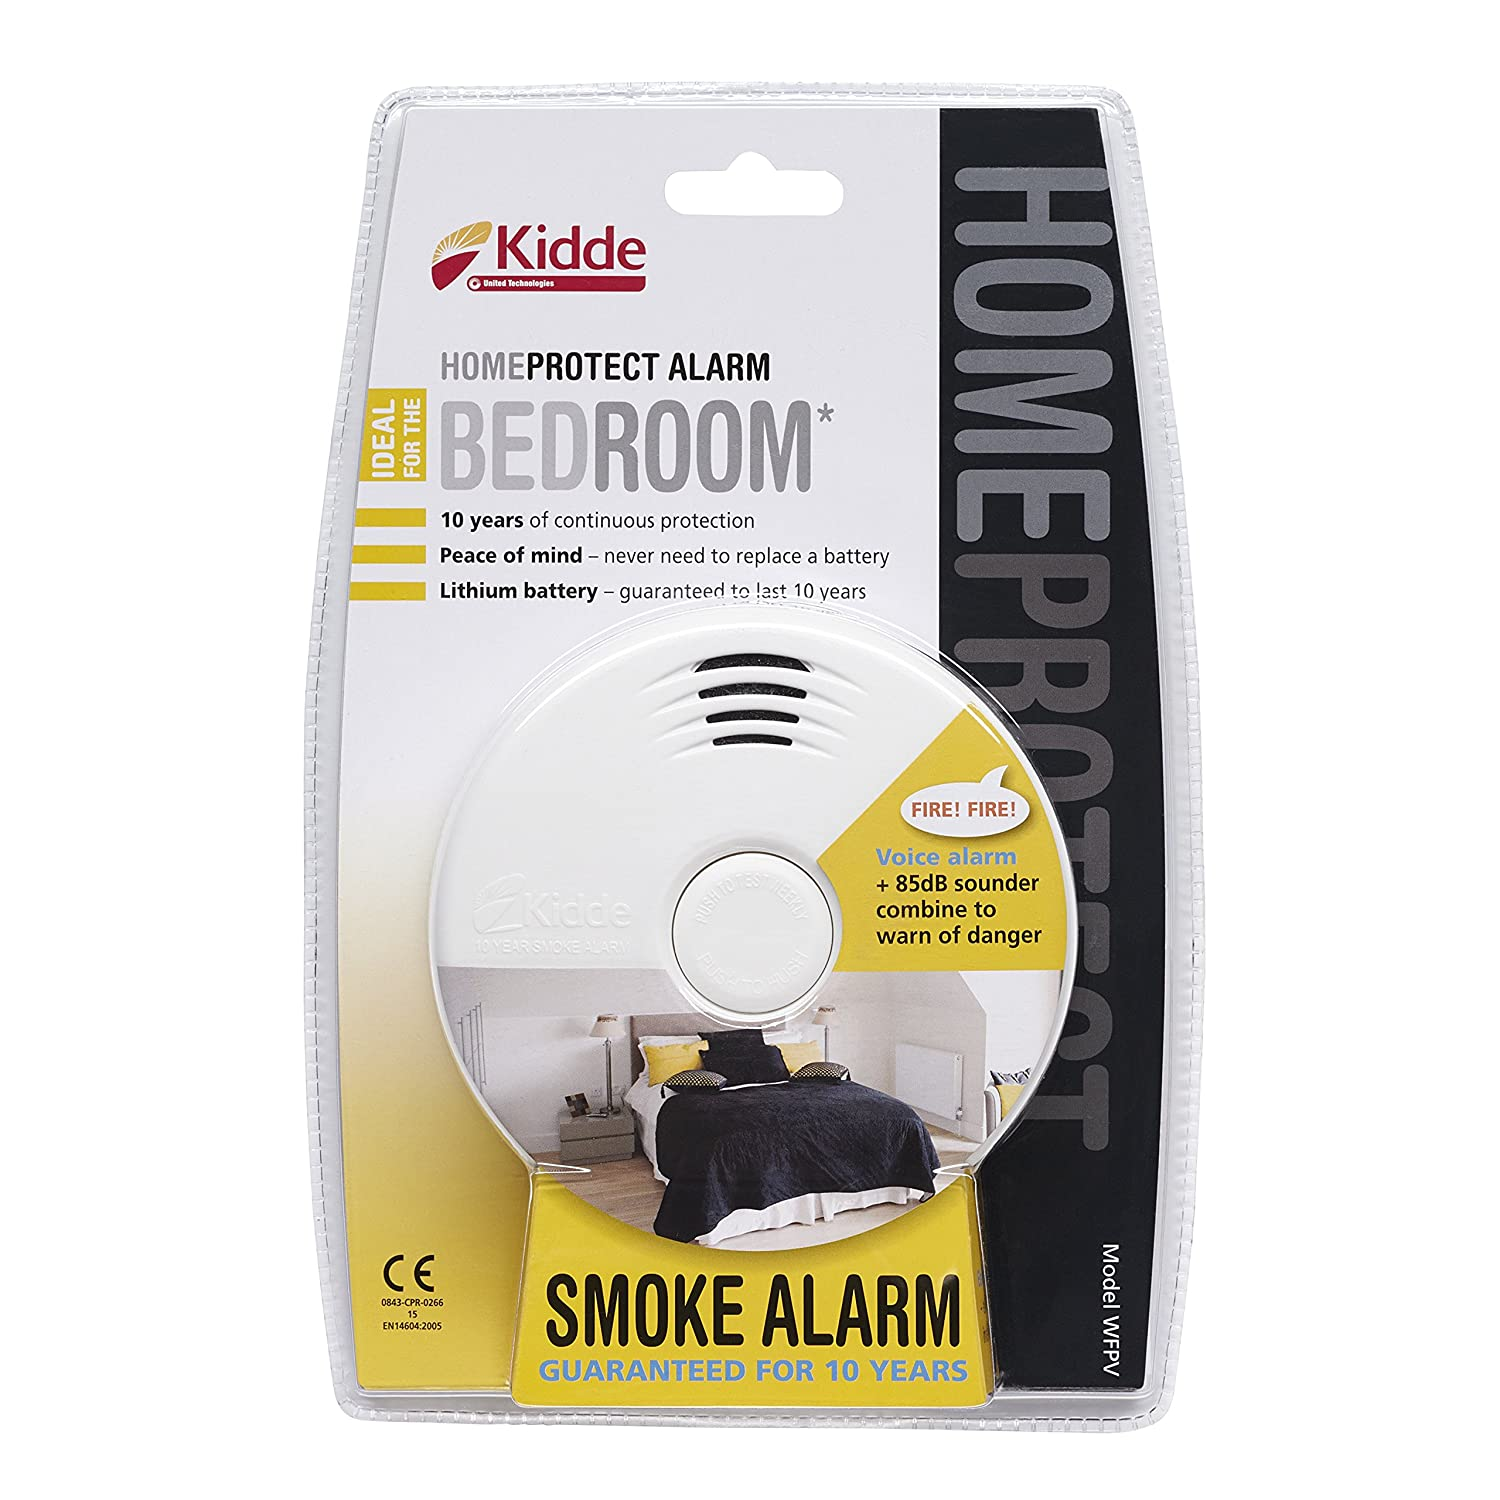 Kidde Home Protect WFPV Bedroom Smoke Alarm, White